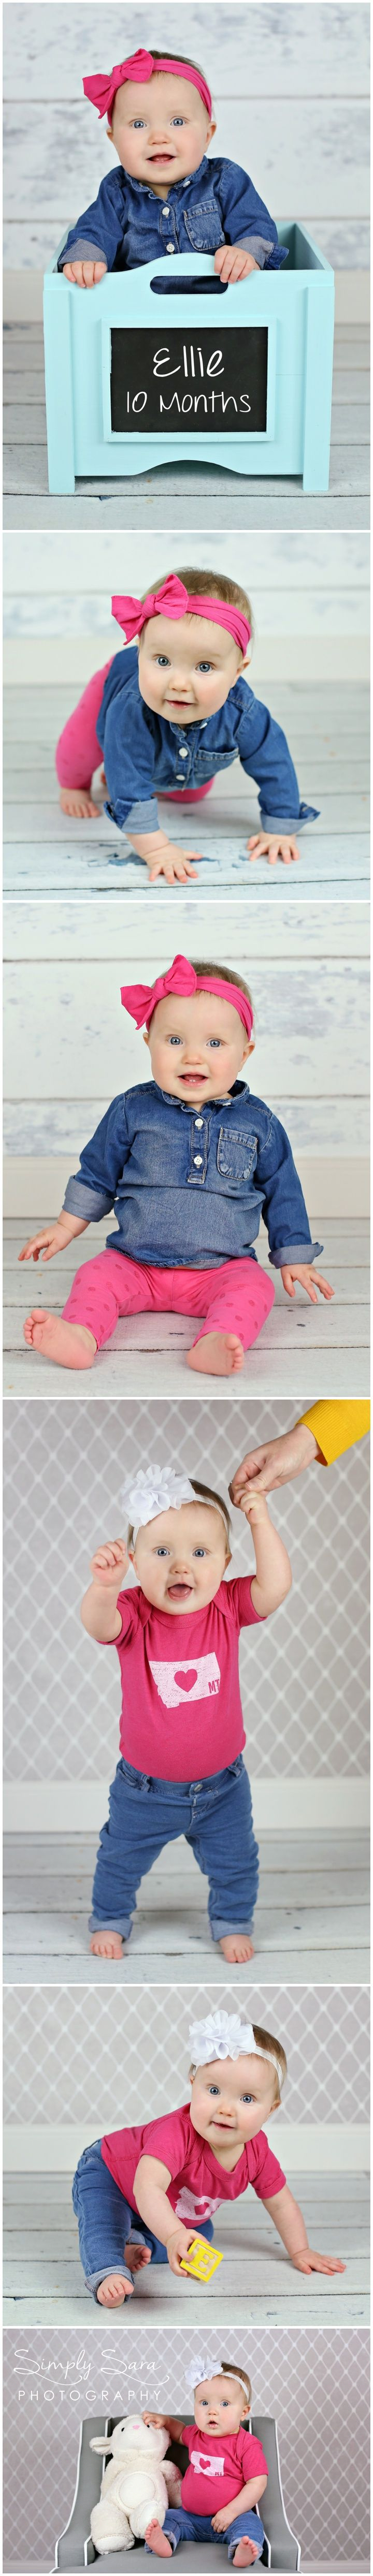 Indoor photo ideas poses 10 month old baby girl home studio chalkboard box prop billings mt family child photographer